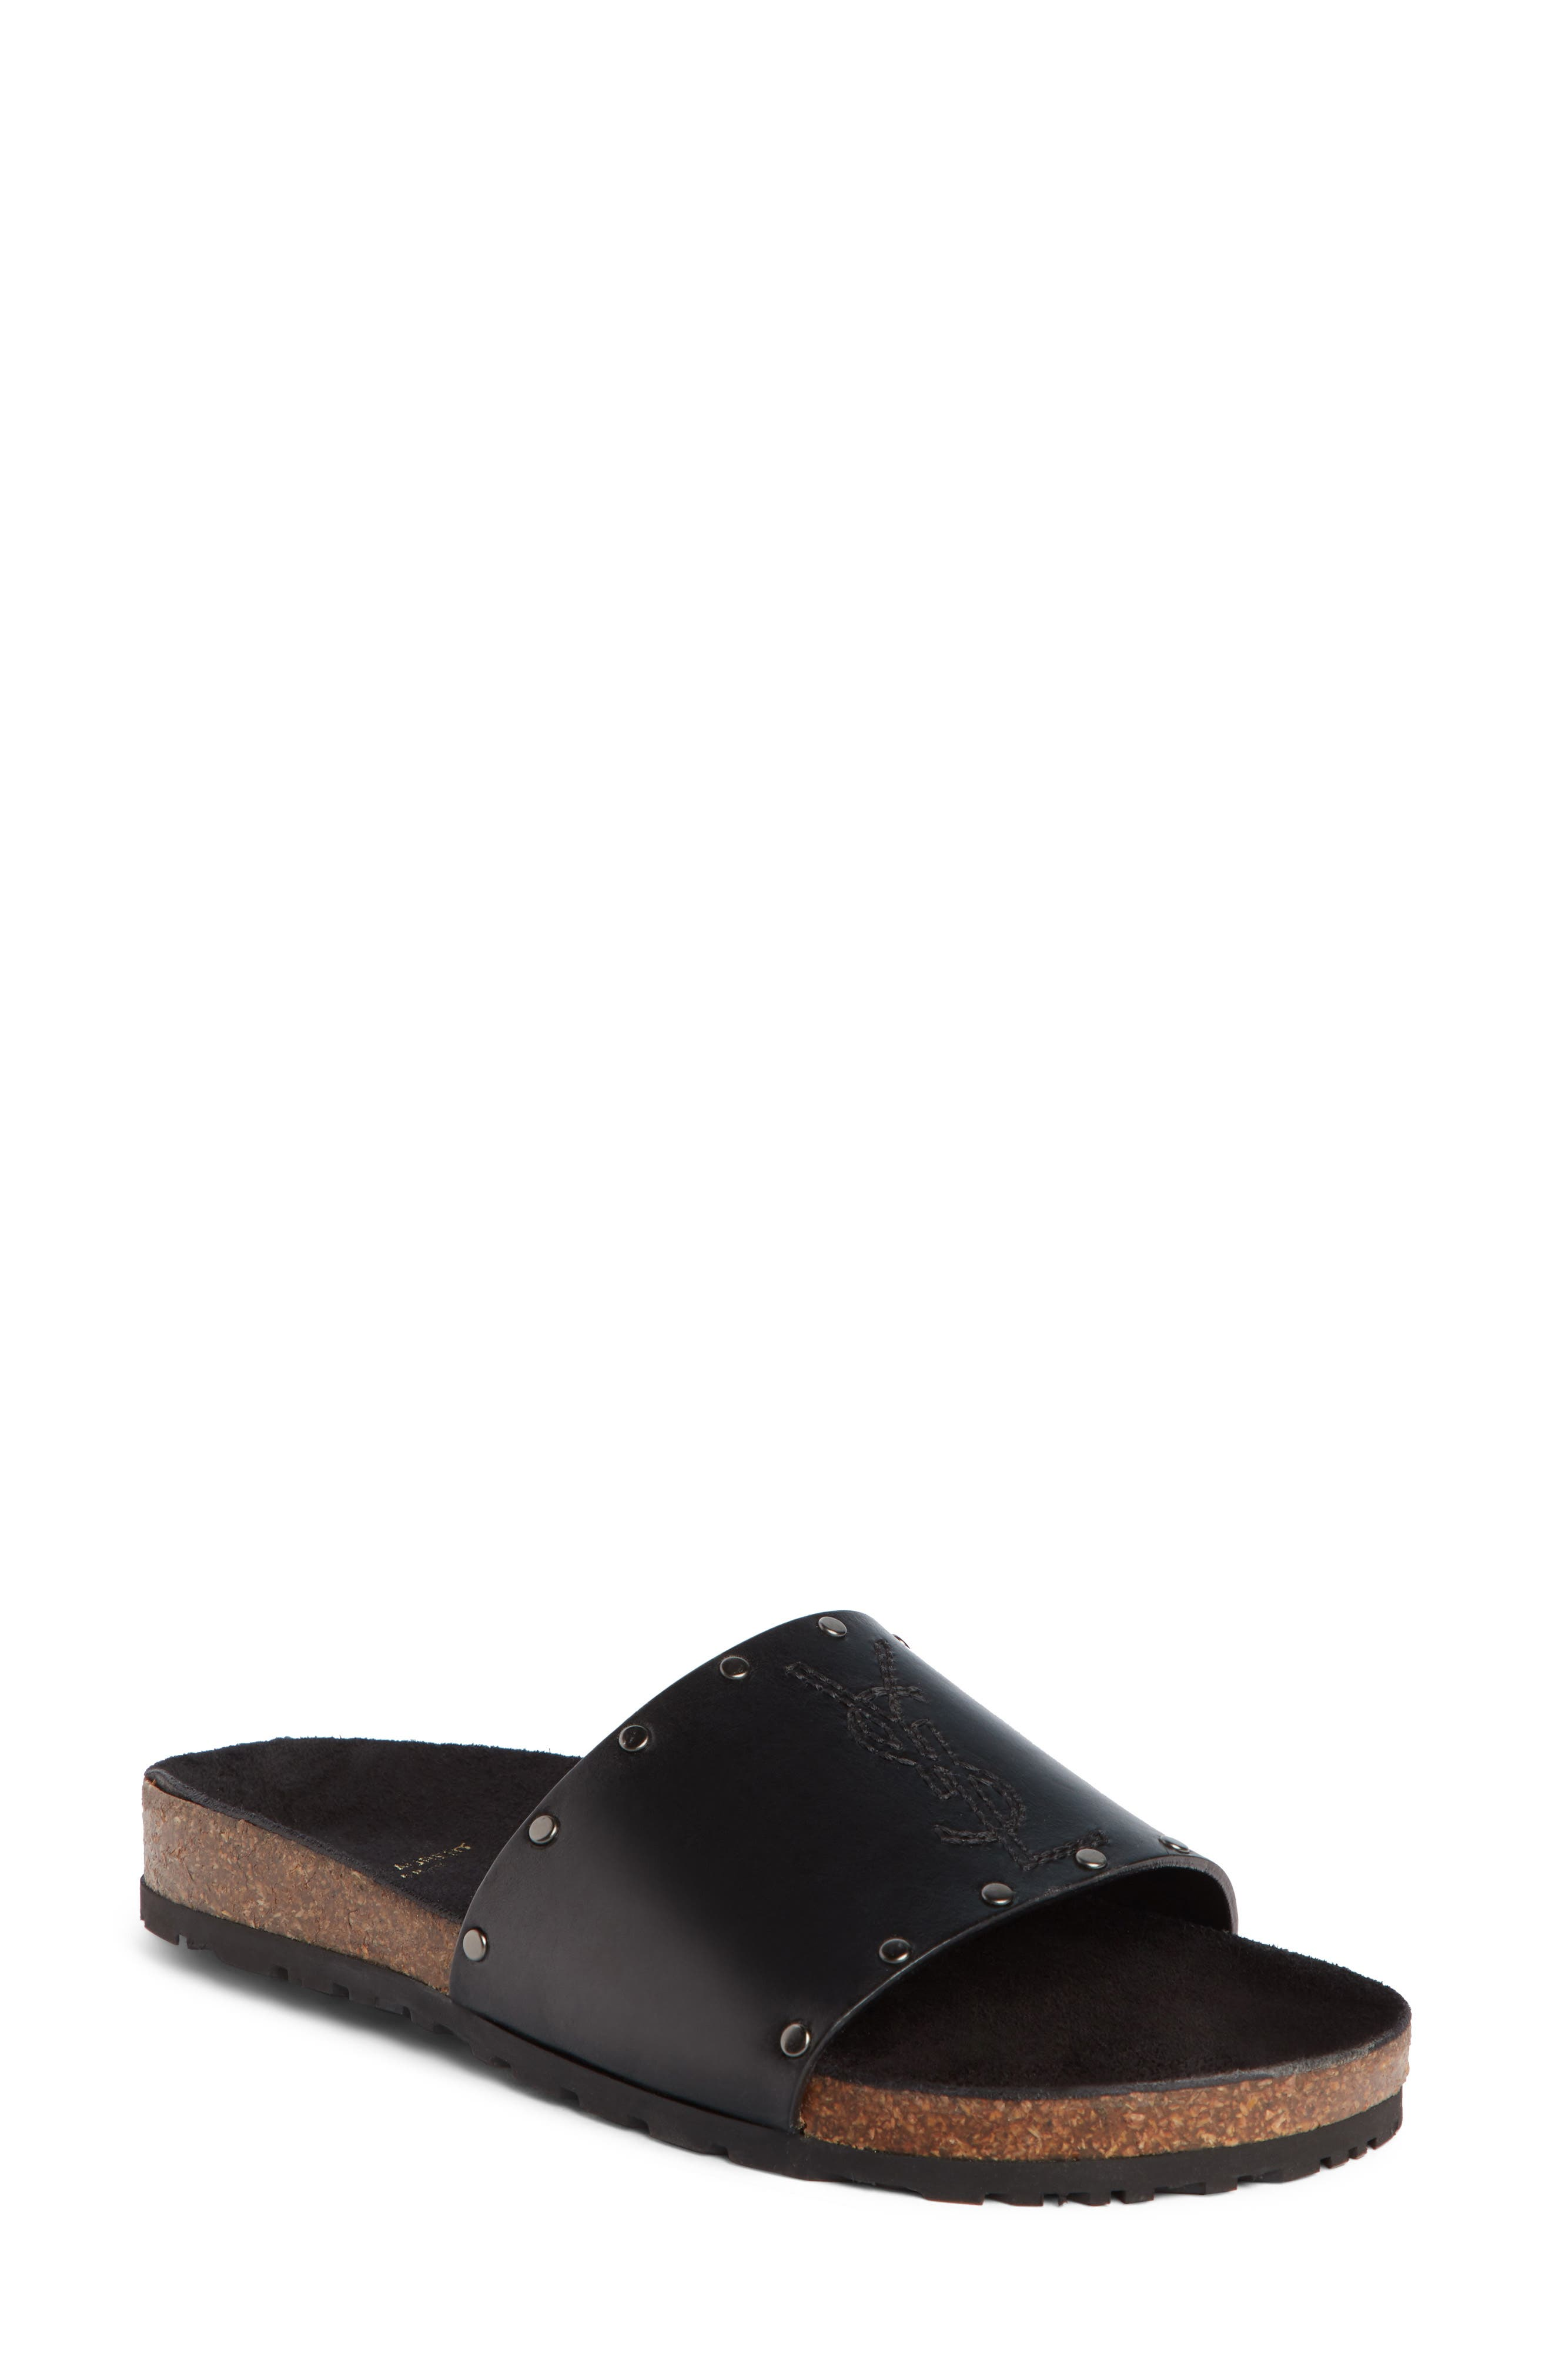 Jimmy Logo Stud Slide Sandal,                             Main thumbnail 1, color,                             BLACK LEATHER